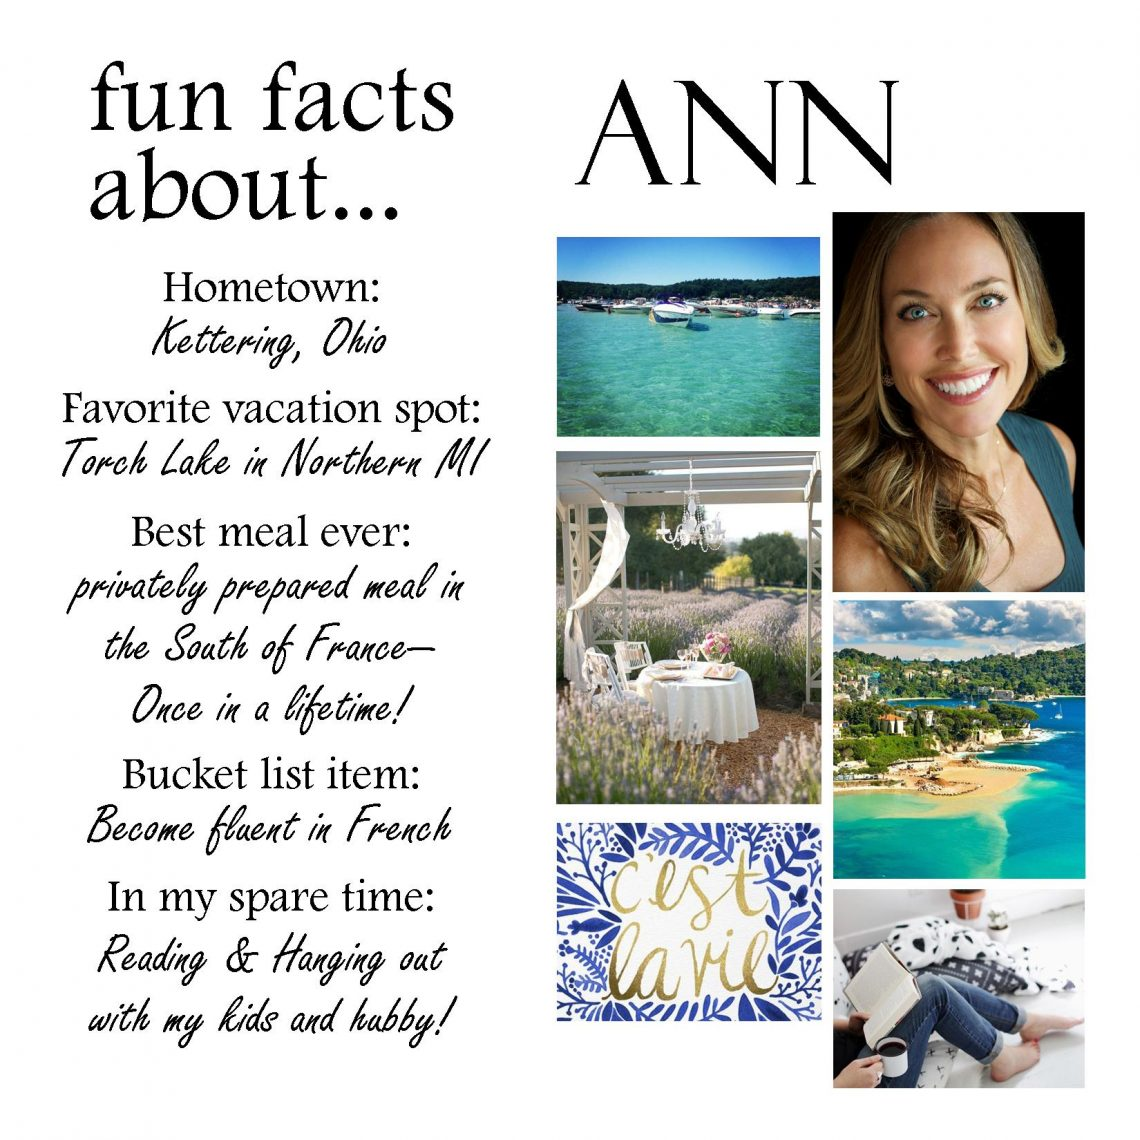 ann-fun-facts